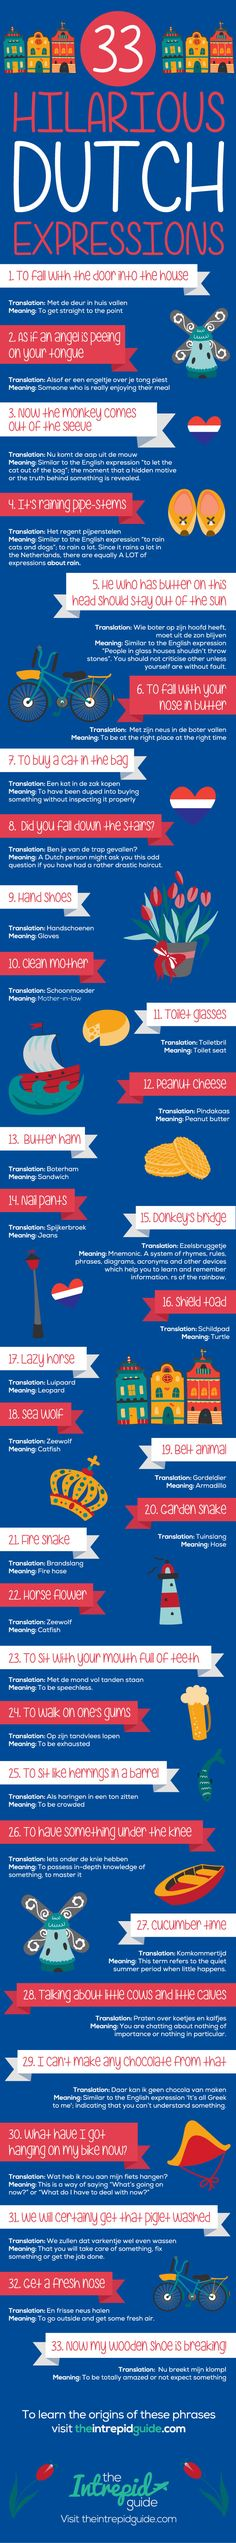 funny dutch phrases Idioms and expressions infographic